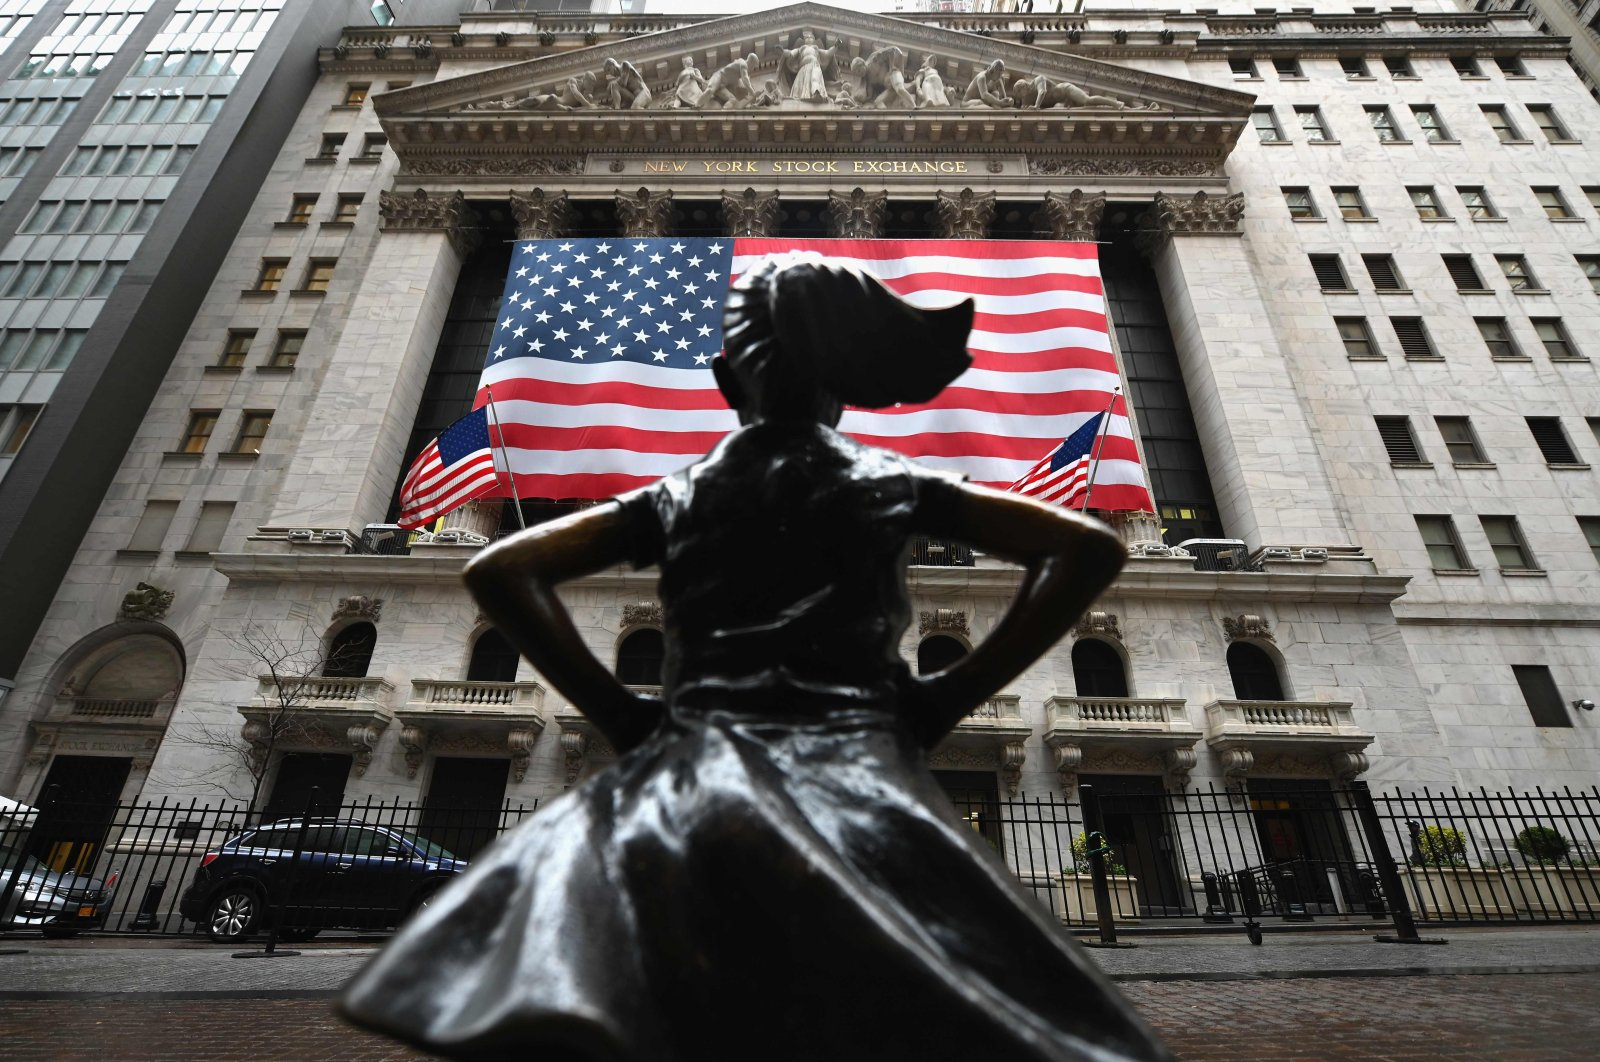 The Fearless Girl statue stands in front of the New York Stock Exchange near Wall Street in New York City, March 23, 2020. (AFP Photo)